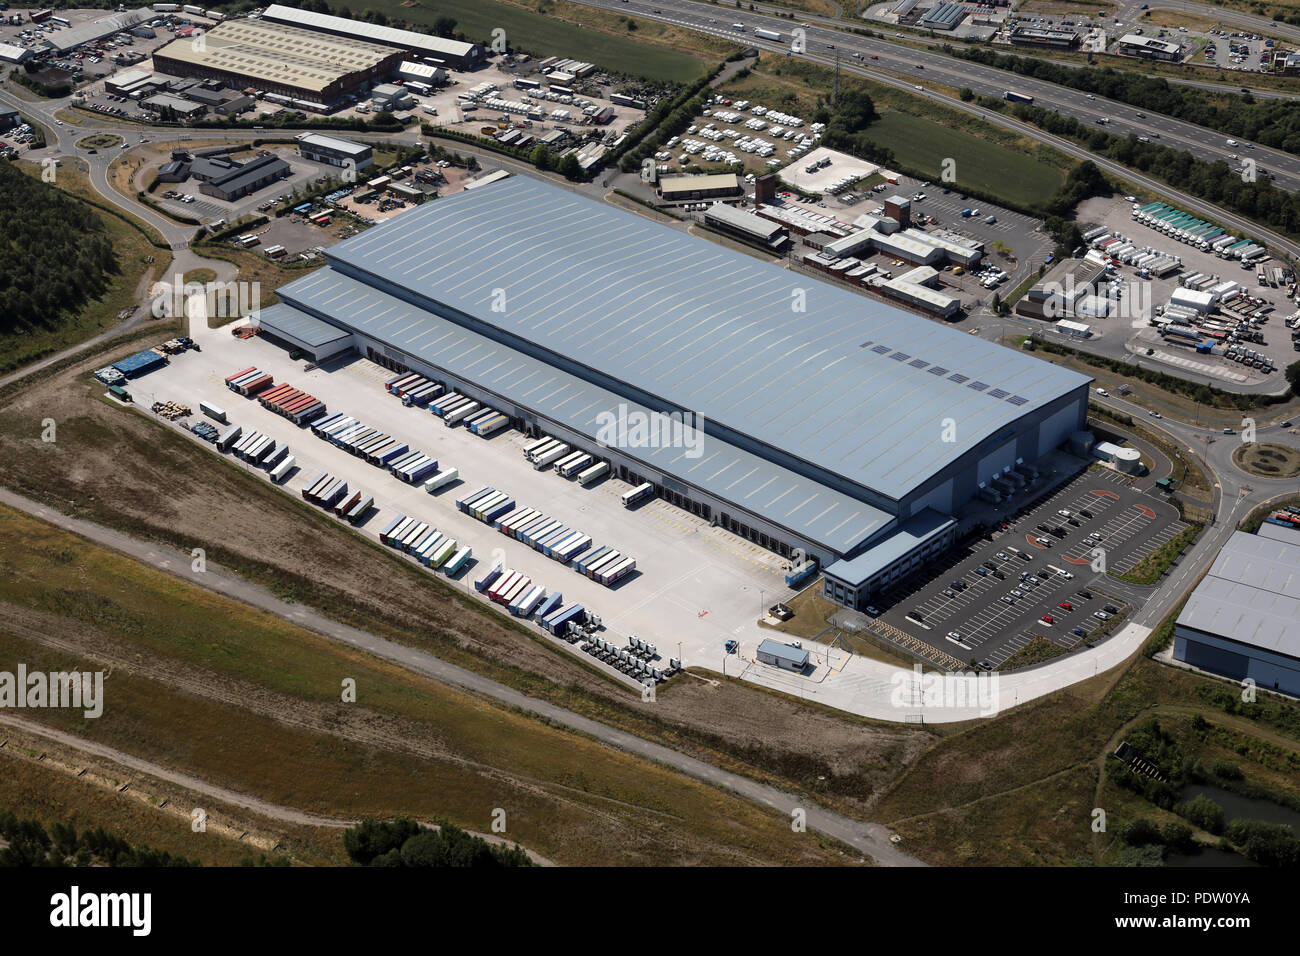 aerial view of the Great Bear Distribution unit at Markham Vale near Chesterfield - Stock Image